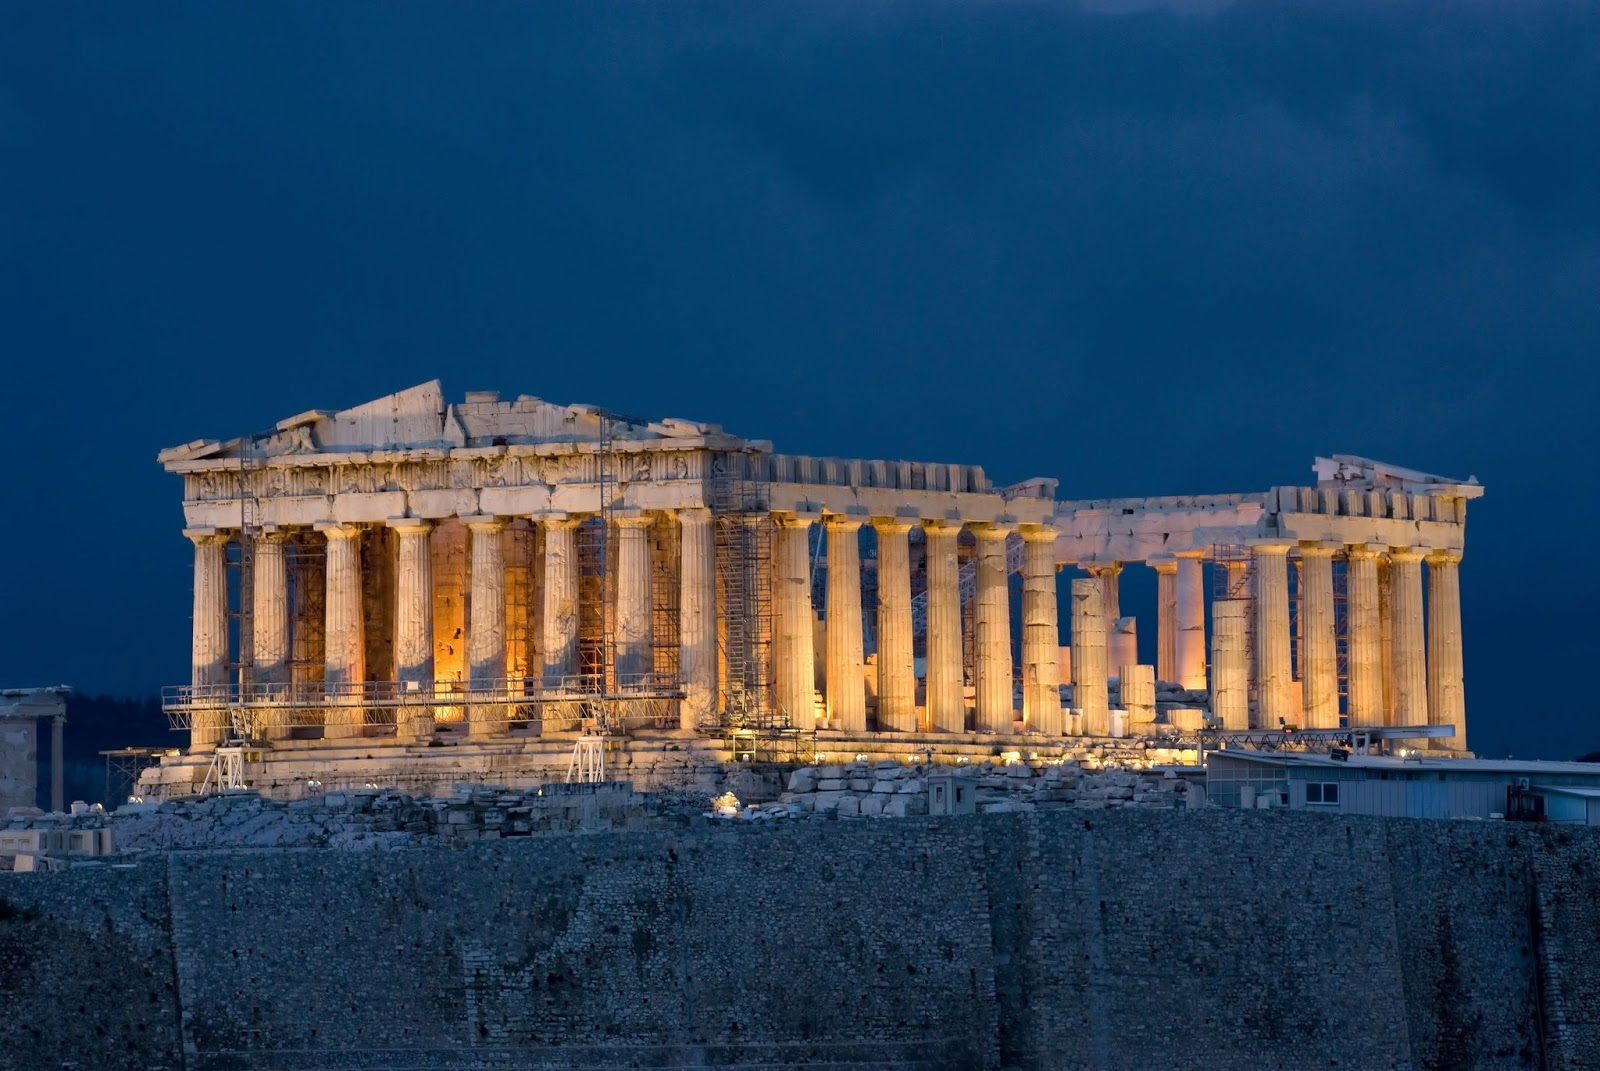 parthenon acropolis athens The acropolis hill (acro - edge, polis - city), so called the sacred rock of athens, is the most important site of the city and constitutes one of the most recognizable monuments of the world it is the most significant reference point of ancient g.